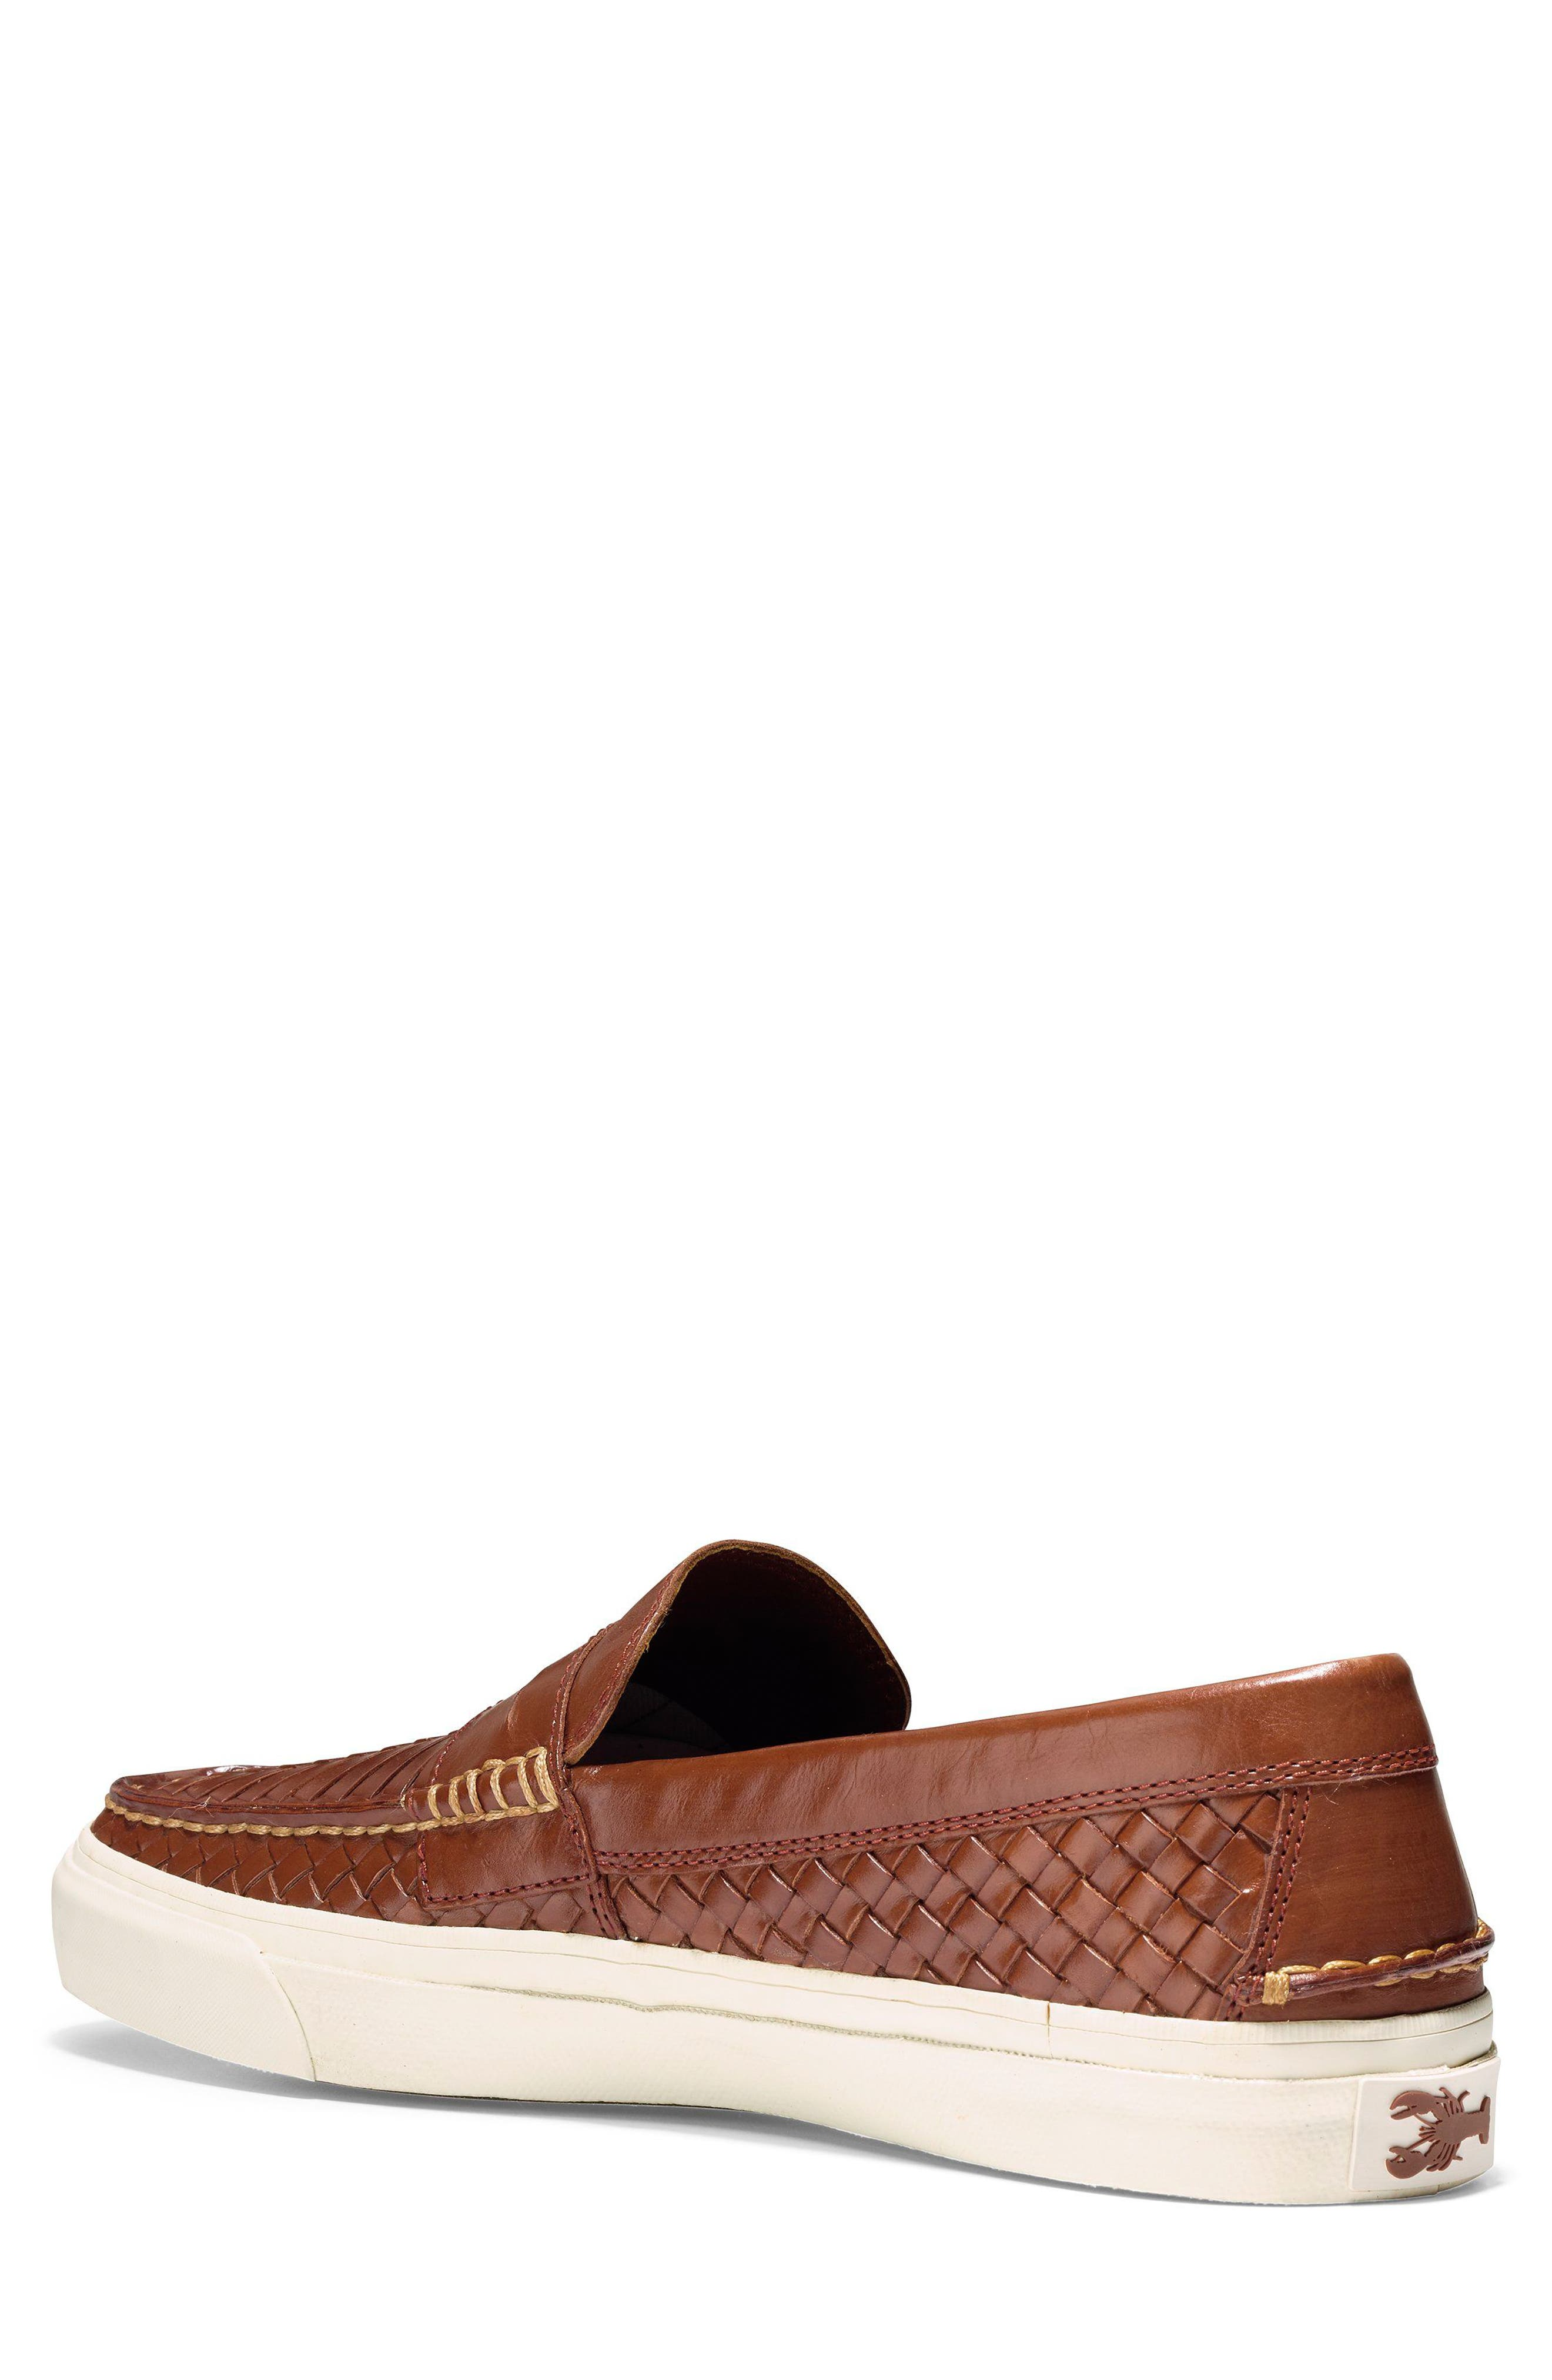 Pinch Weekend LX Huarache Loafer,                             Alternate thumbnail 2, color,                             WOODBURY WOVEN BURNISH